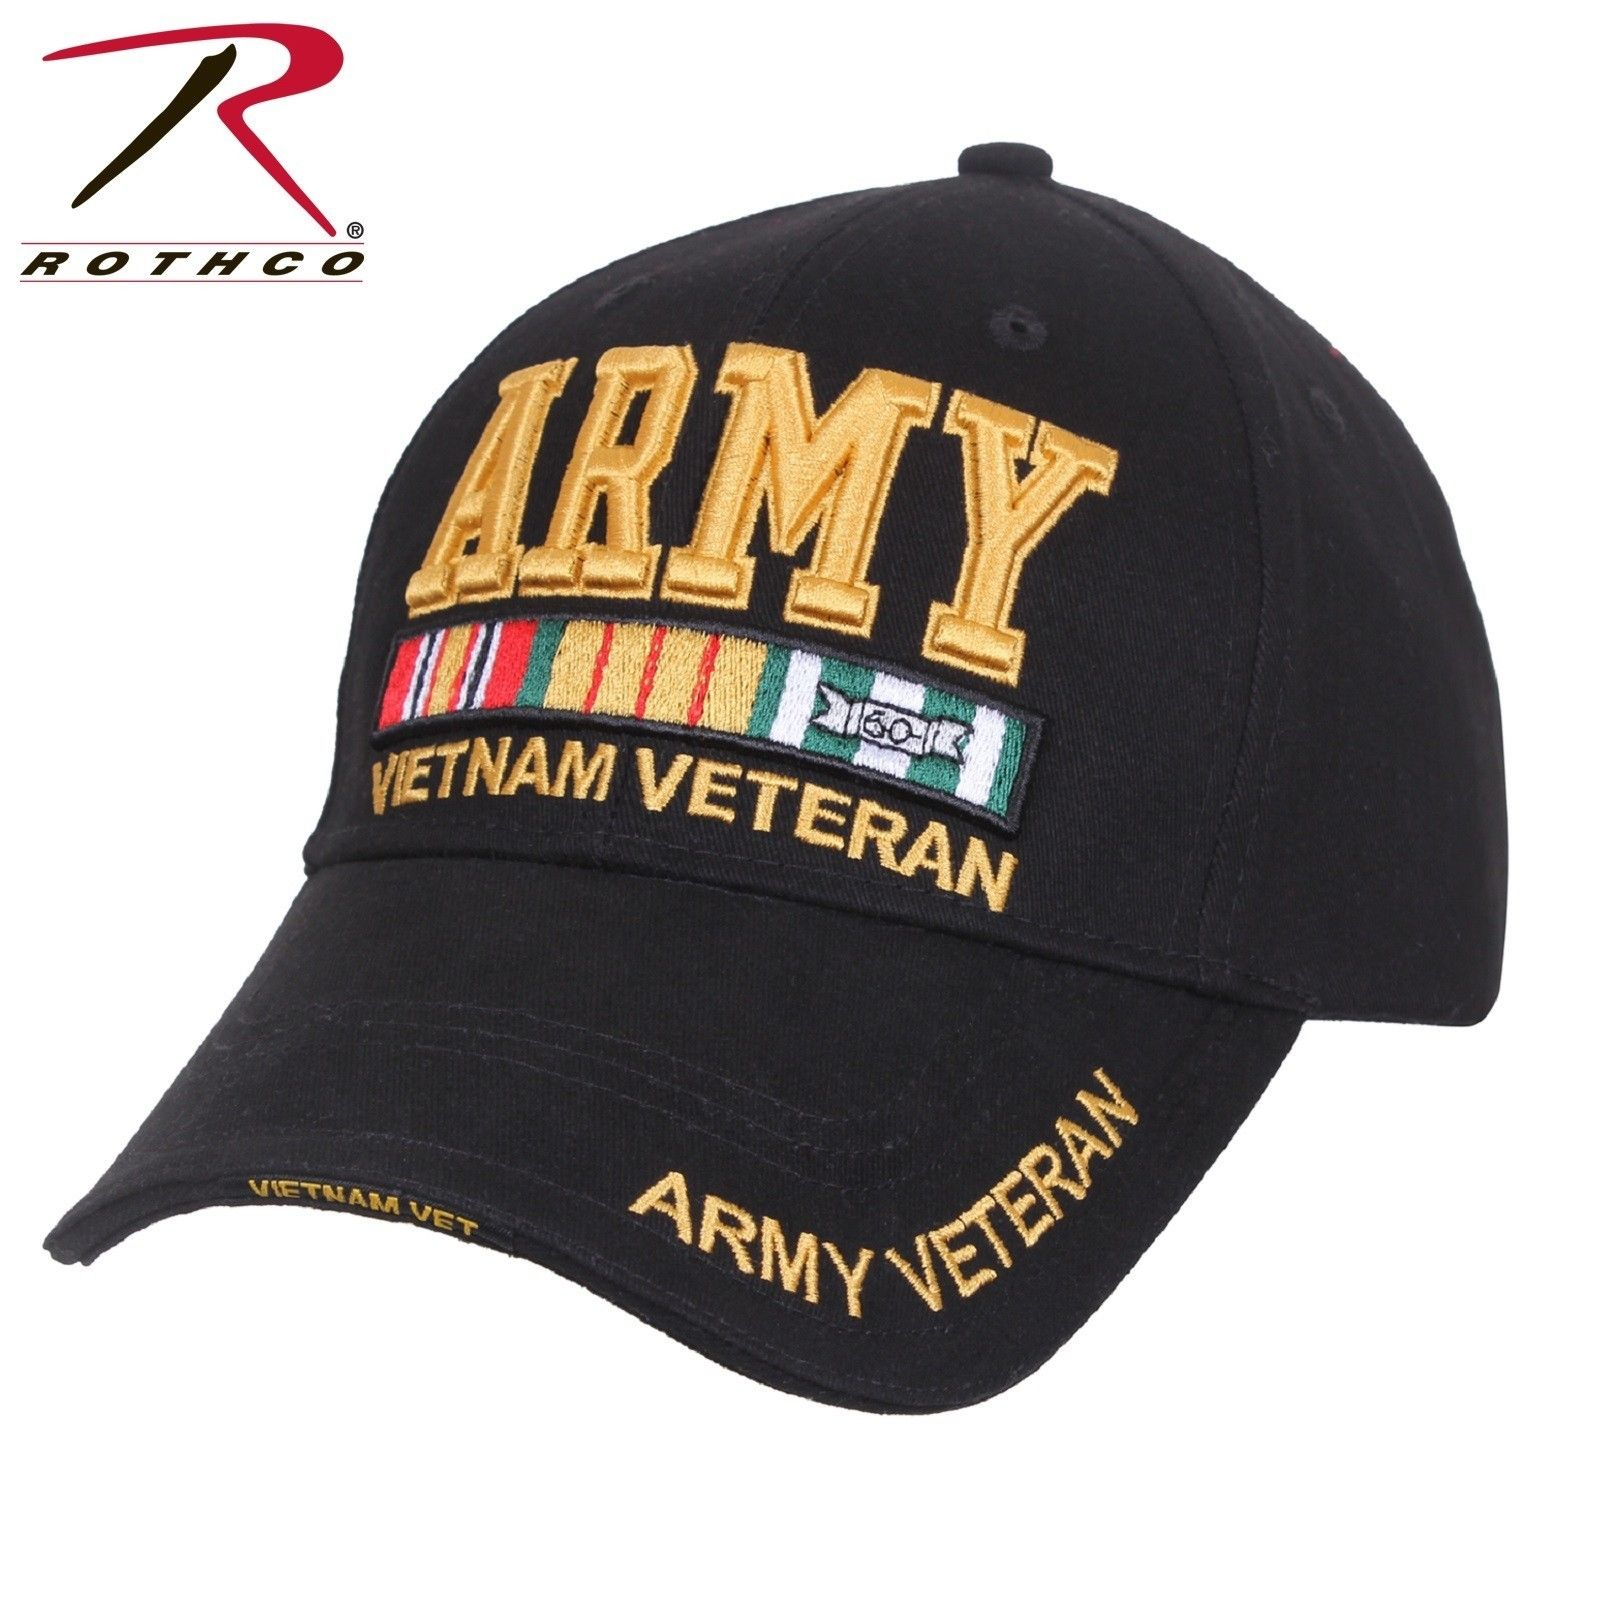 efd2fec42d1 ... Deluxe Low Pro Cap - Nam Veteran Army Baseball Hat. Zoom. Move your  mouse over image or click to enlarge